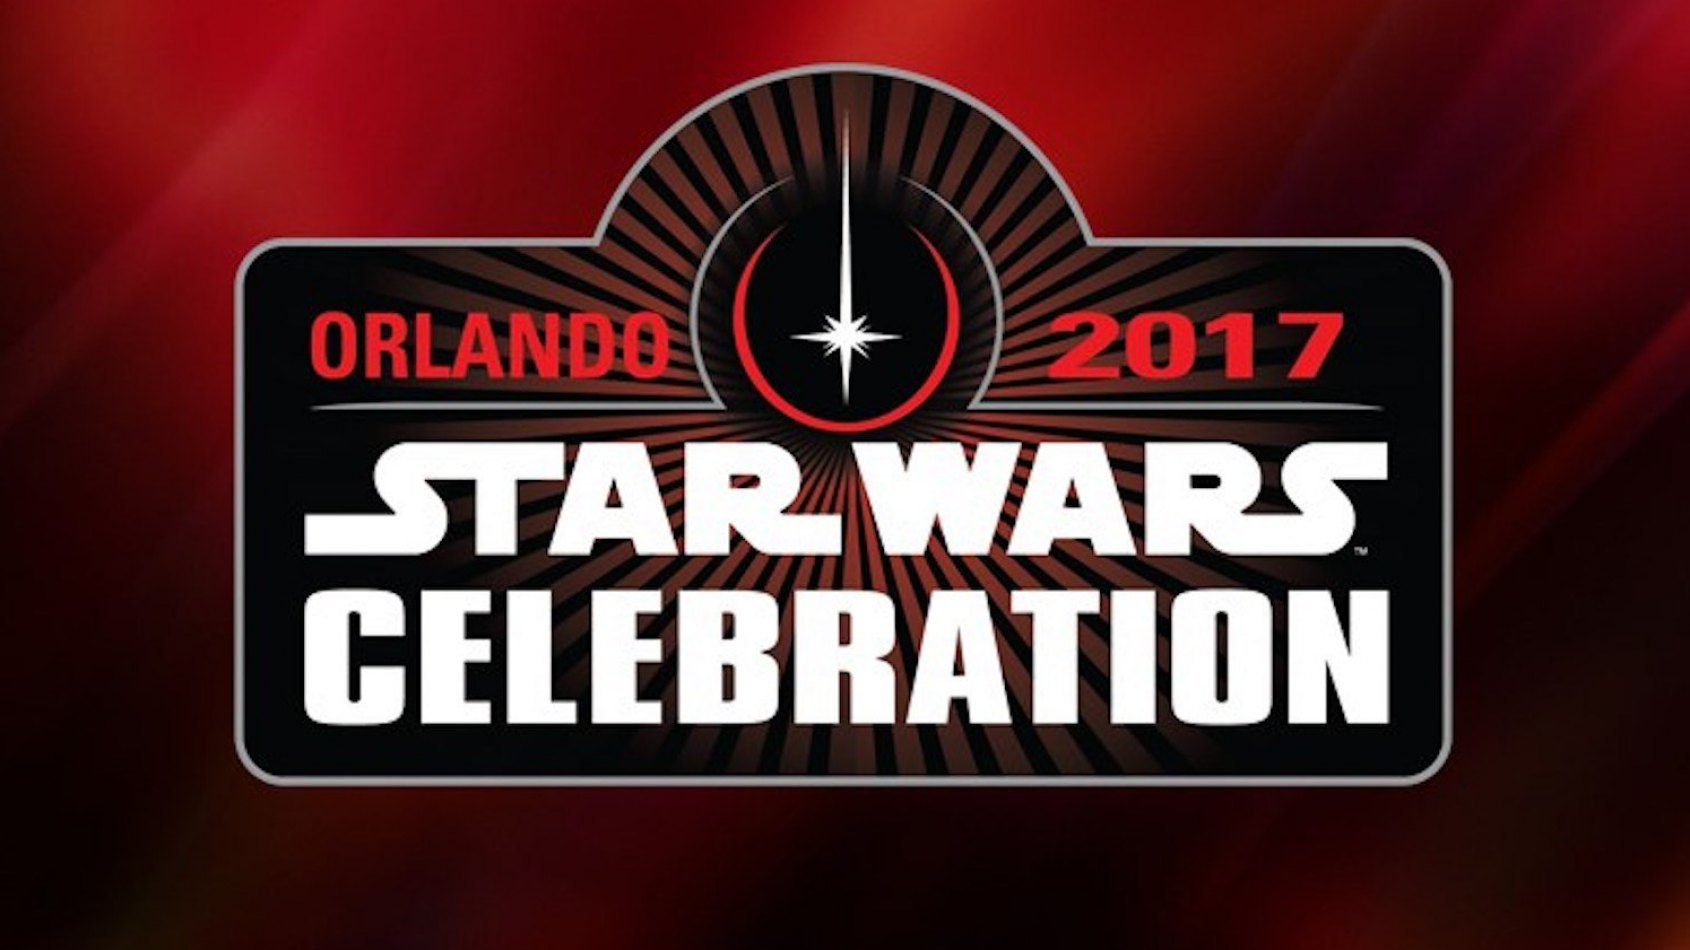 Réservez votre speed dating pour la Star Wars Celebration d'Orlando!